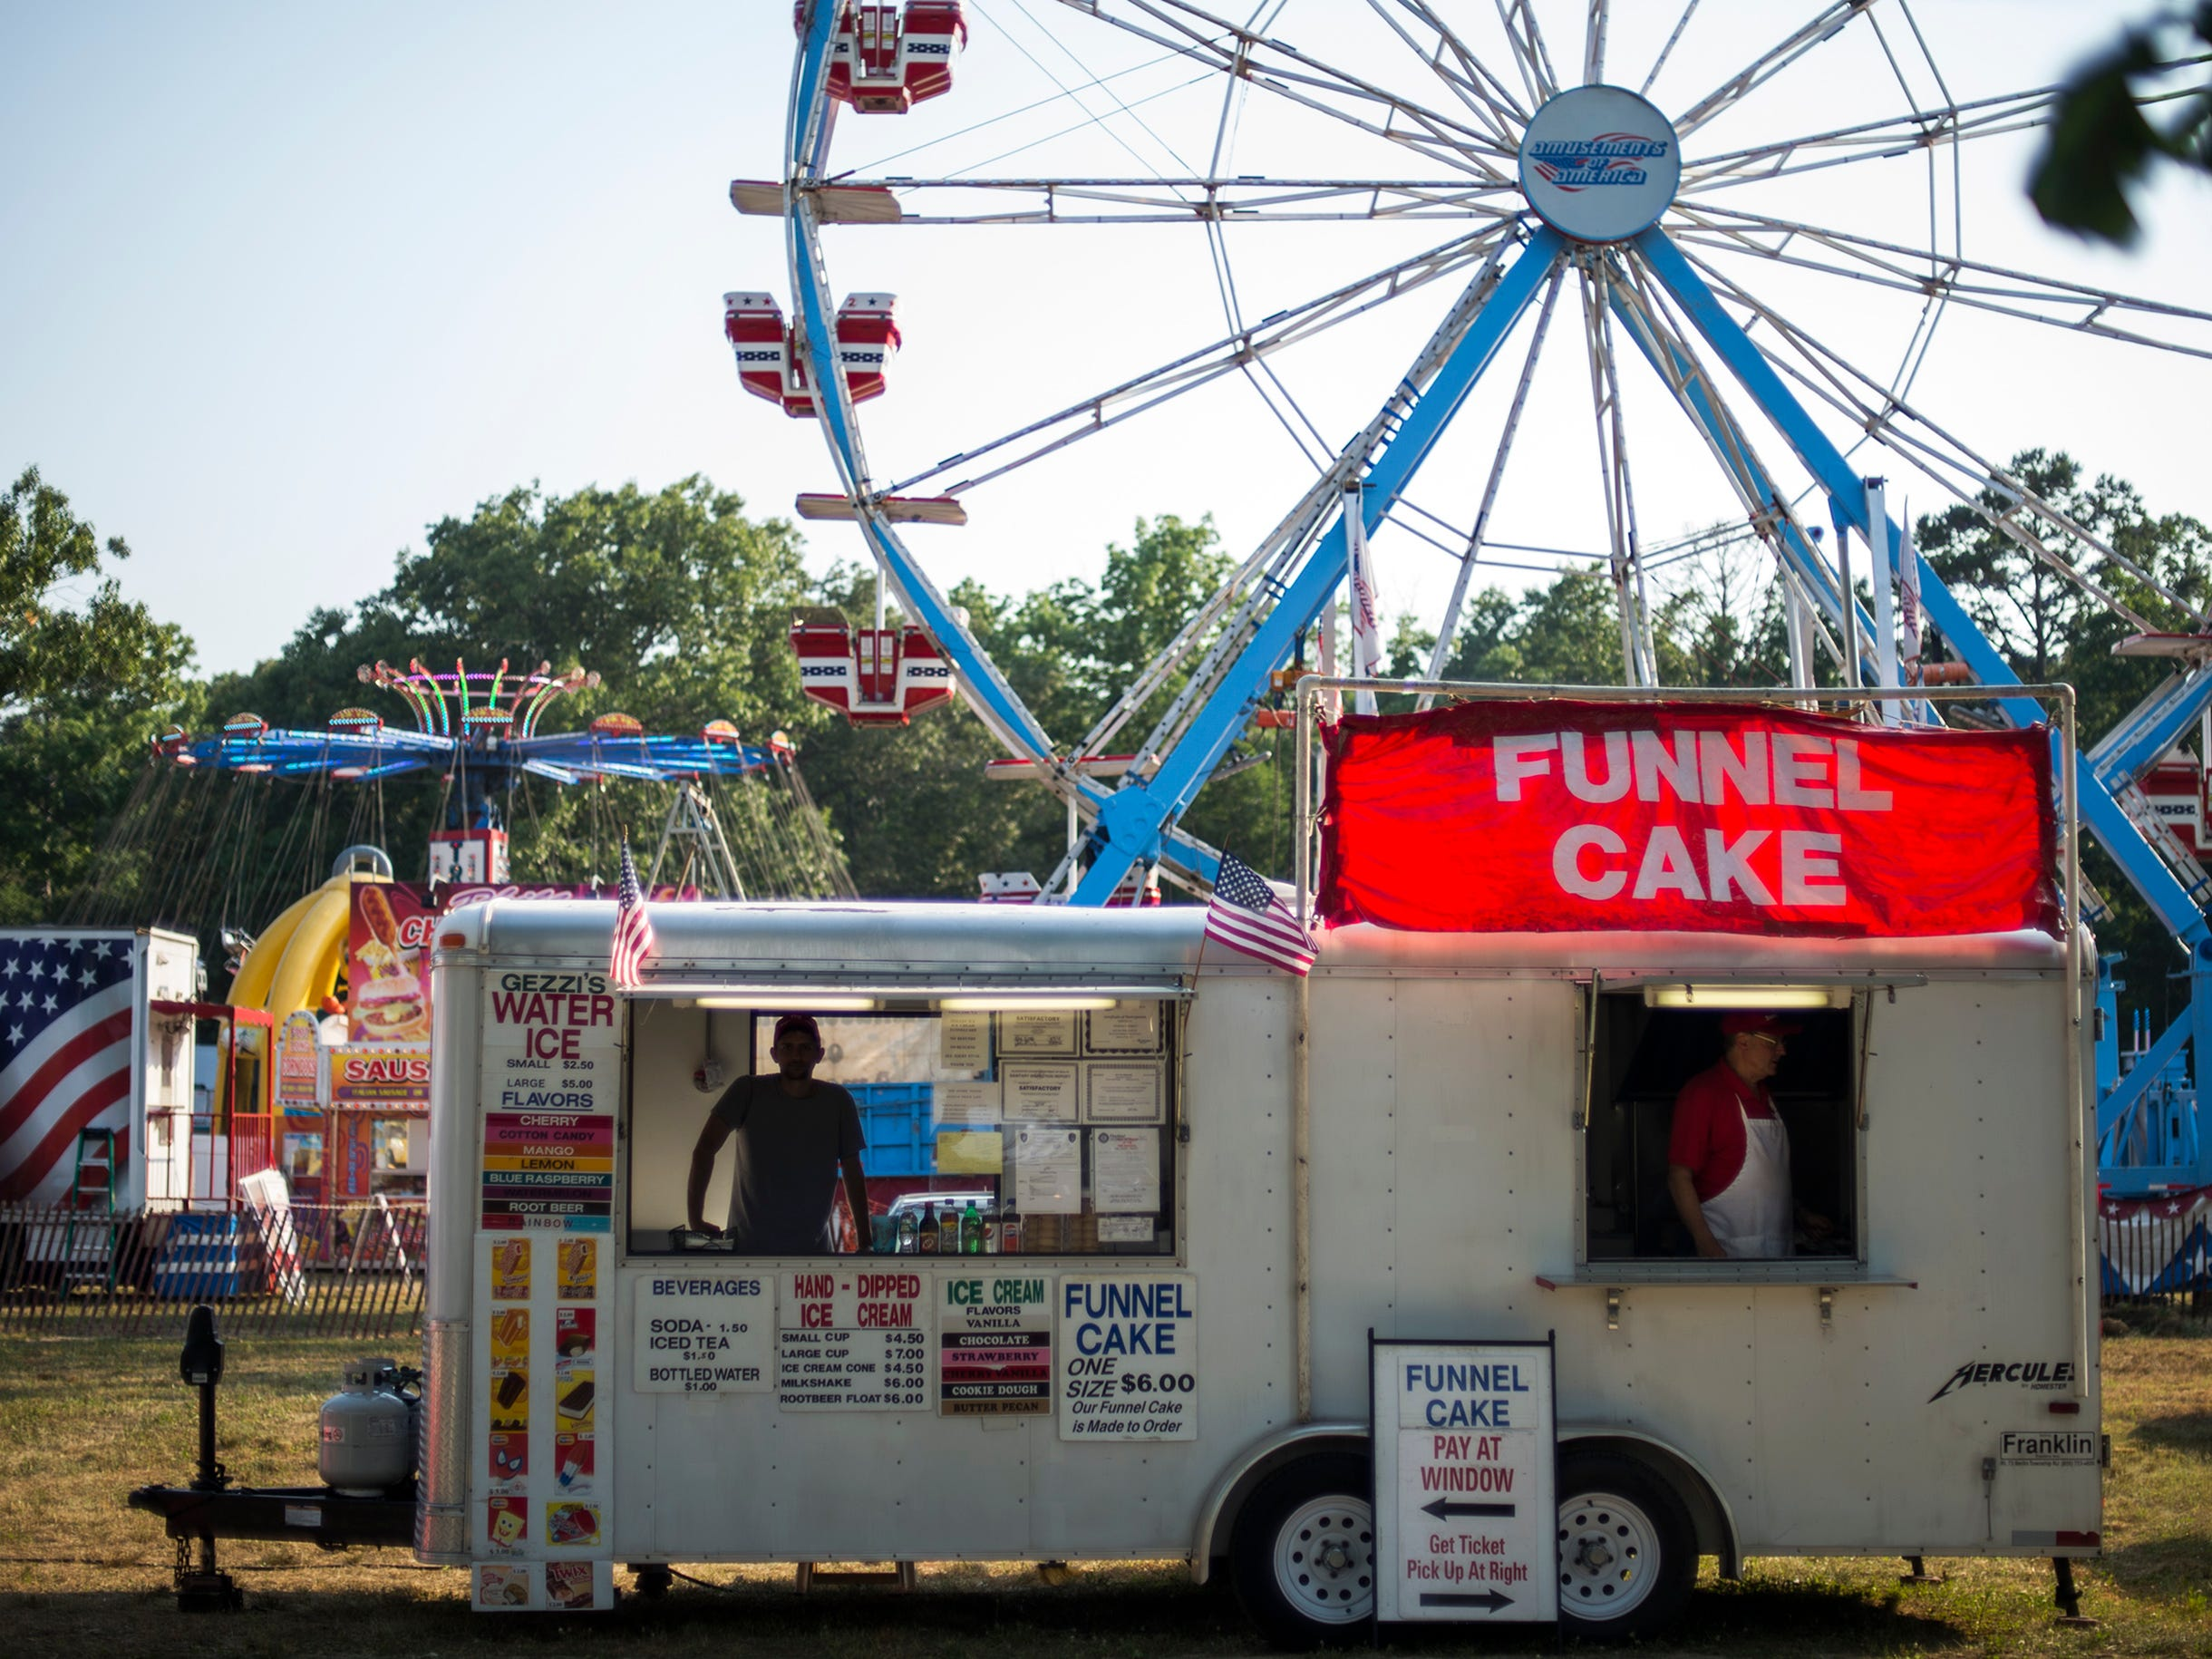 A water ice and funnel cake vendor sets up at the Cumberland County Fair Tuesday, July 3, 2018 in Millville, N.J.